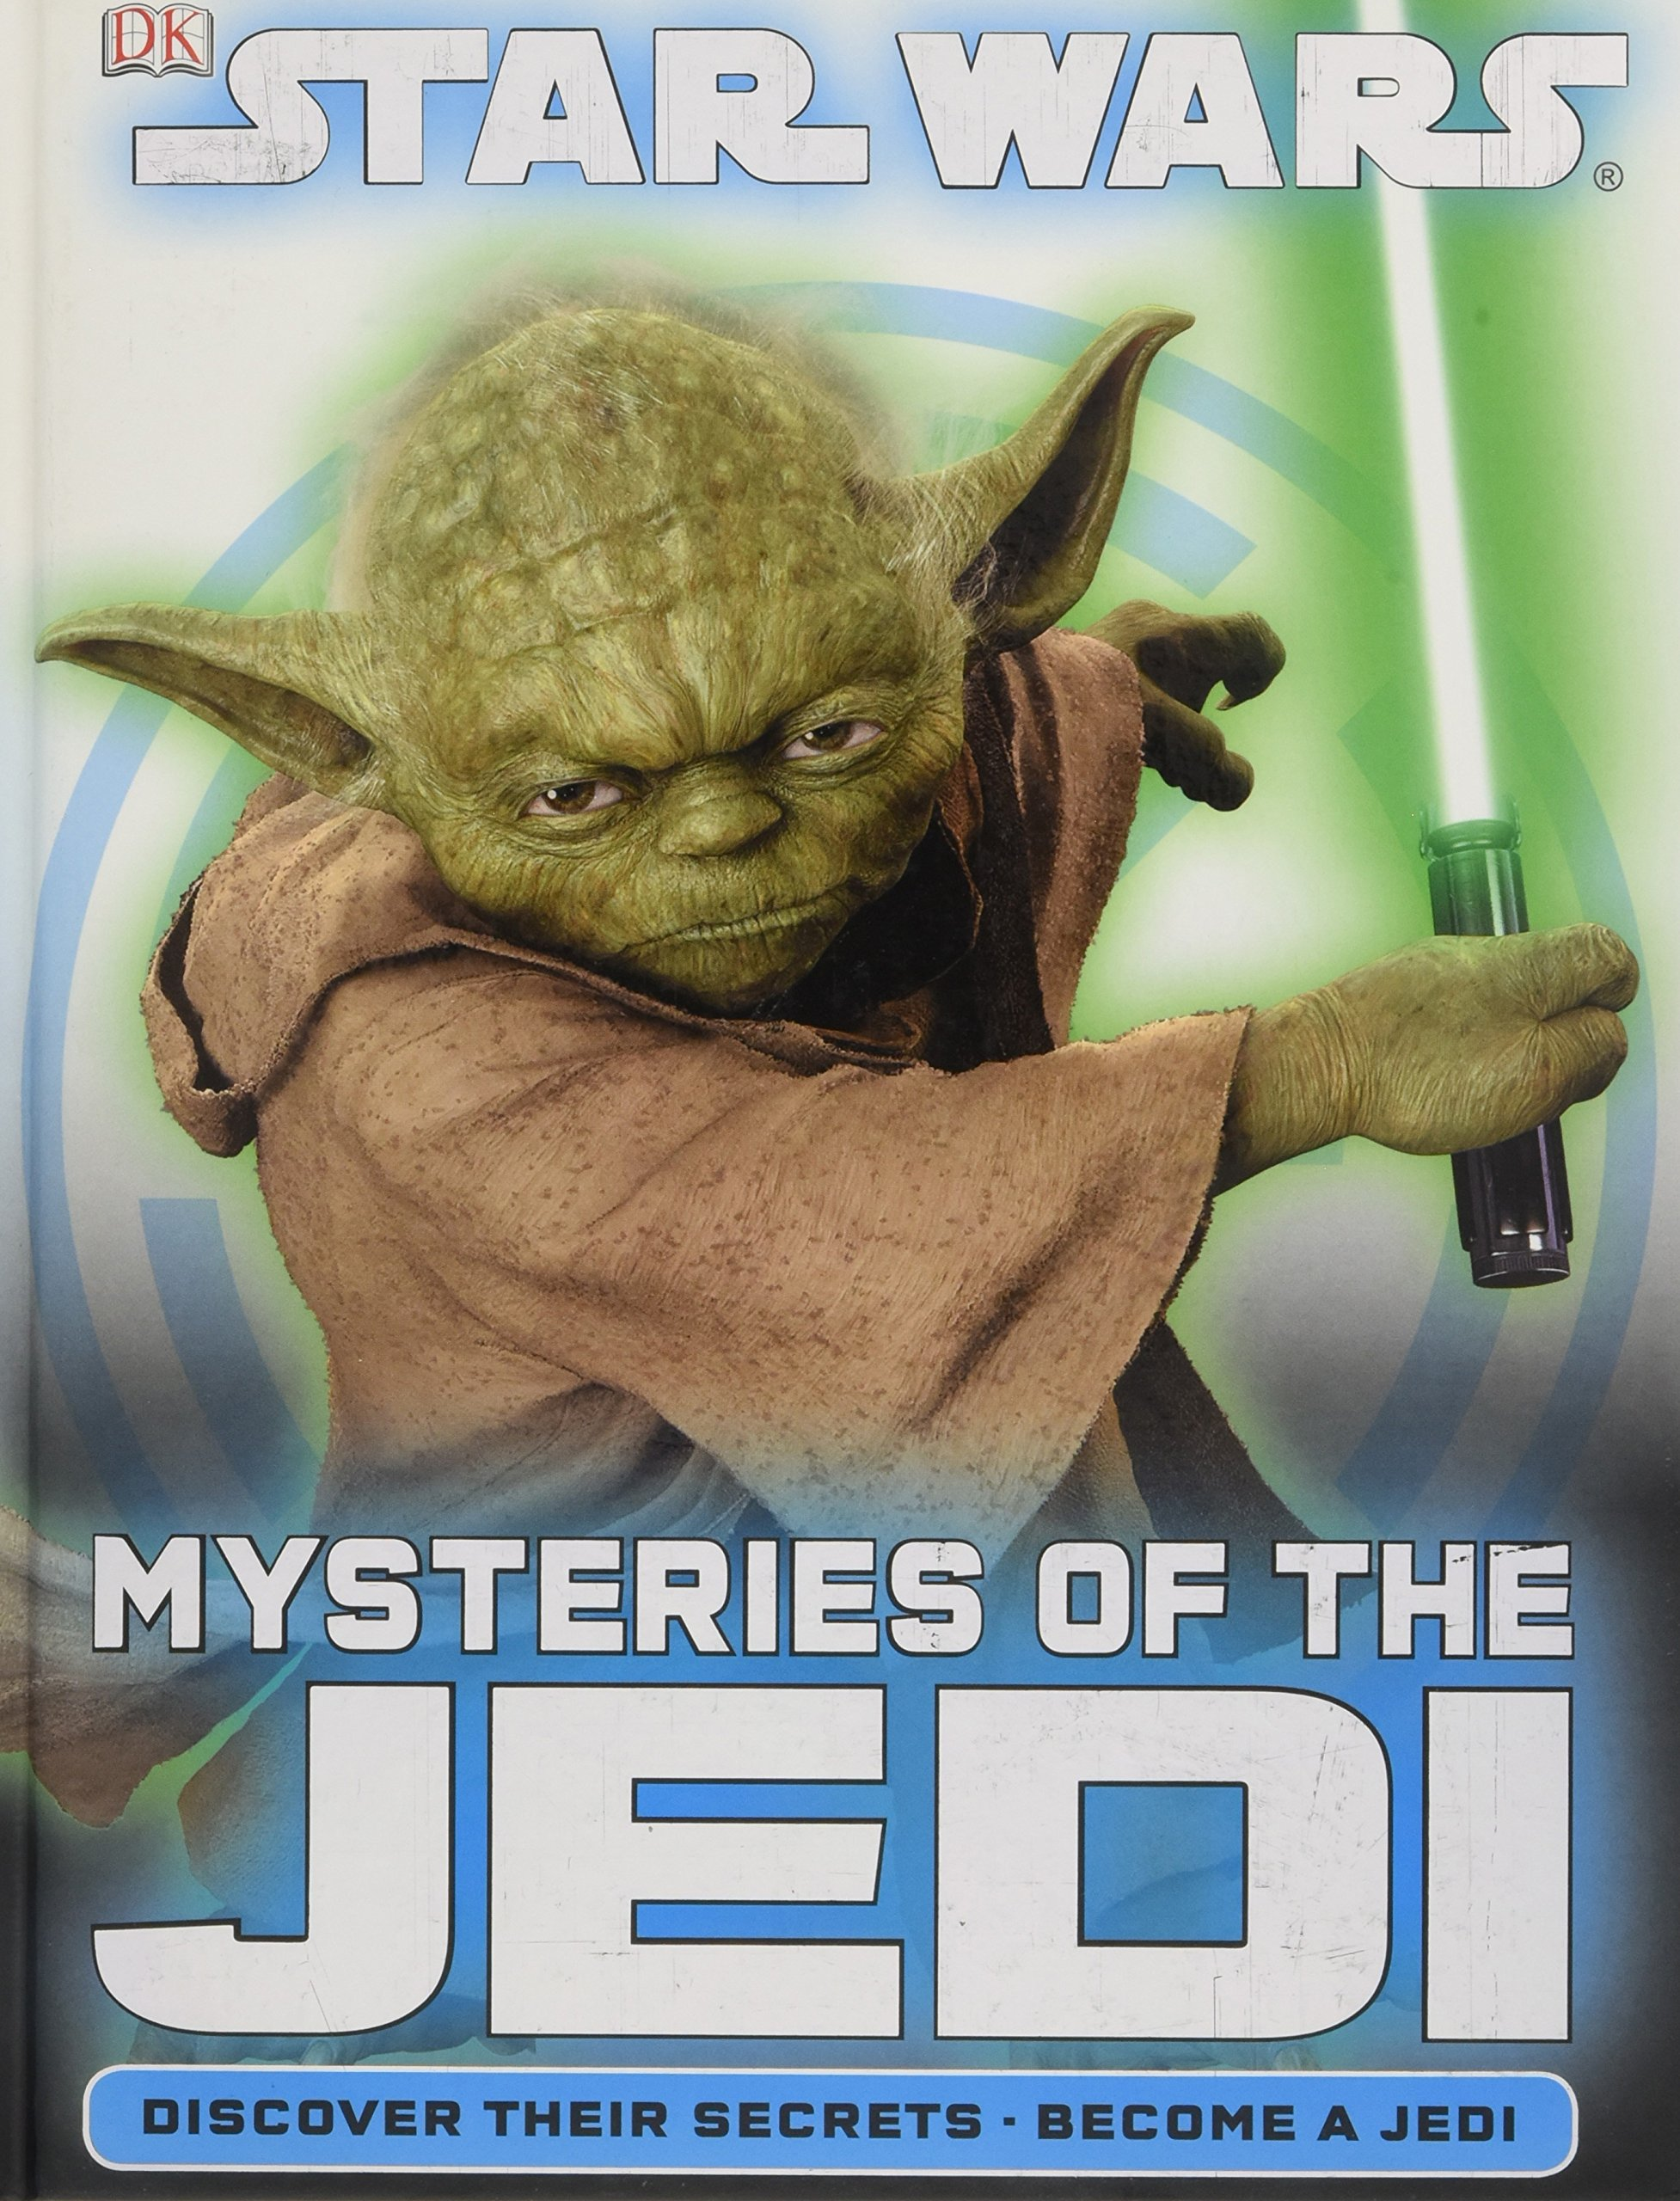 Star Wars: Mysteries of the Jedi